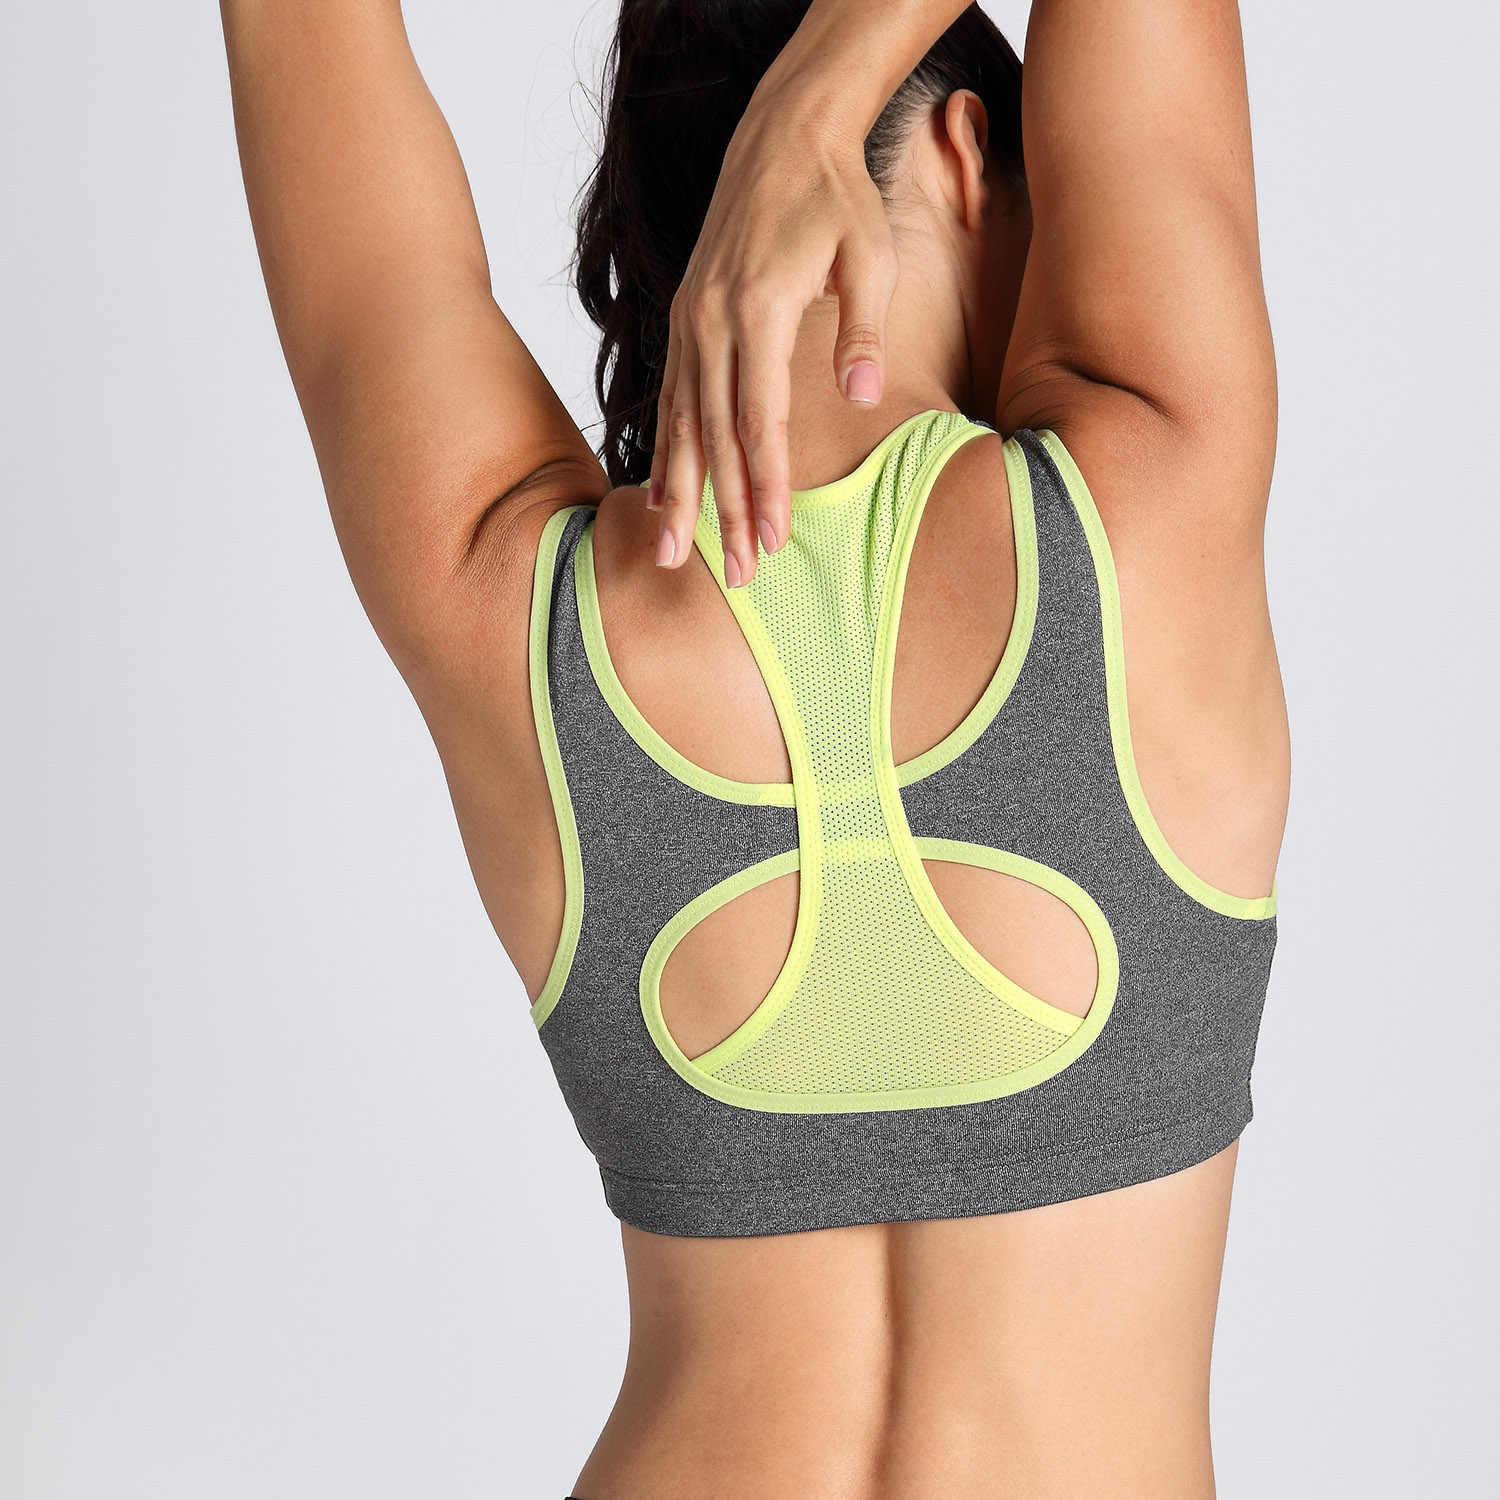 a9c7cc80352 ... Top  SYROKAN Women s High Impact Support Workout Racerback Wirefree  Sports Bra ...